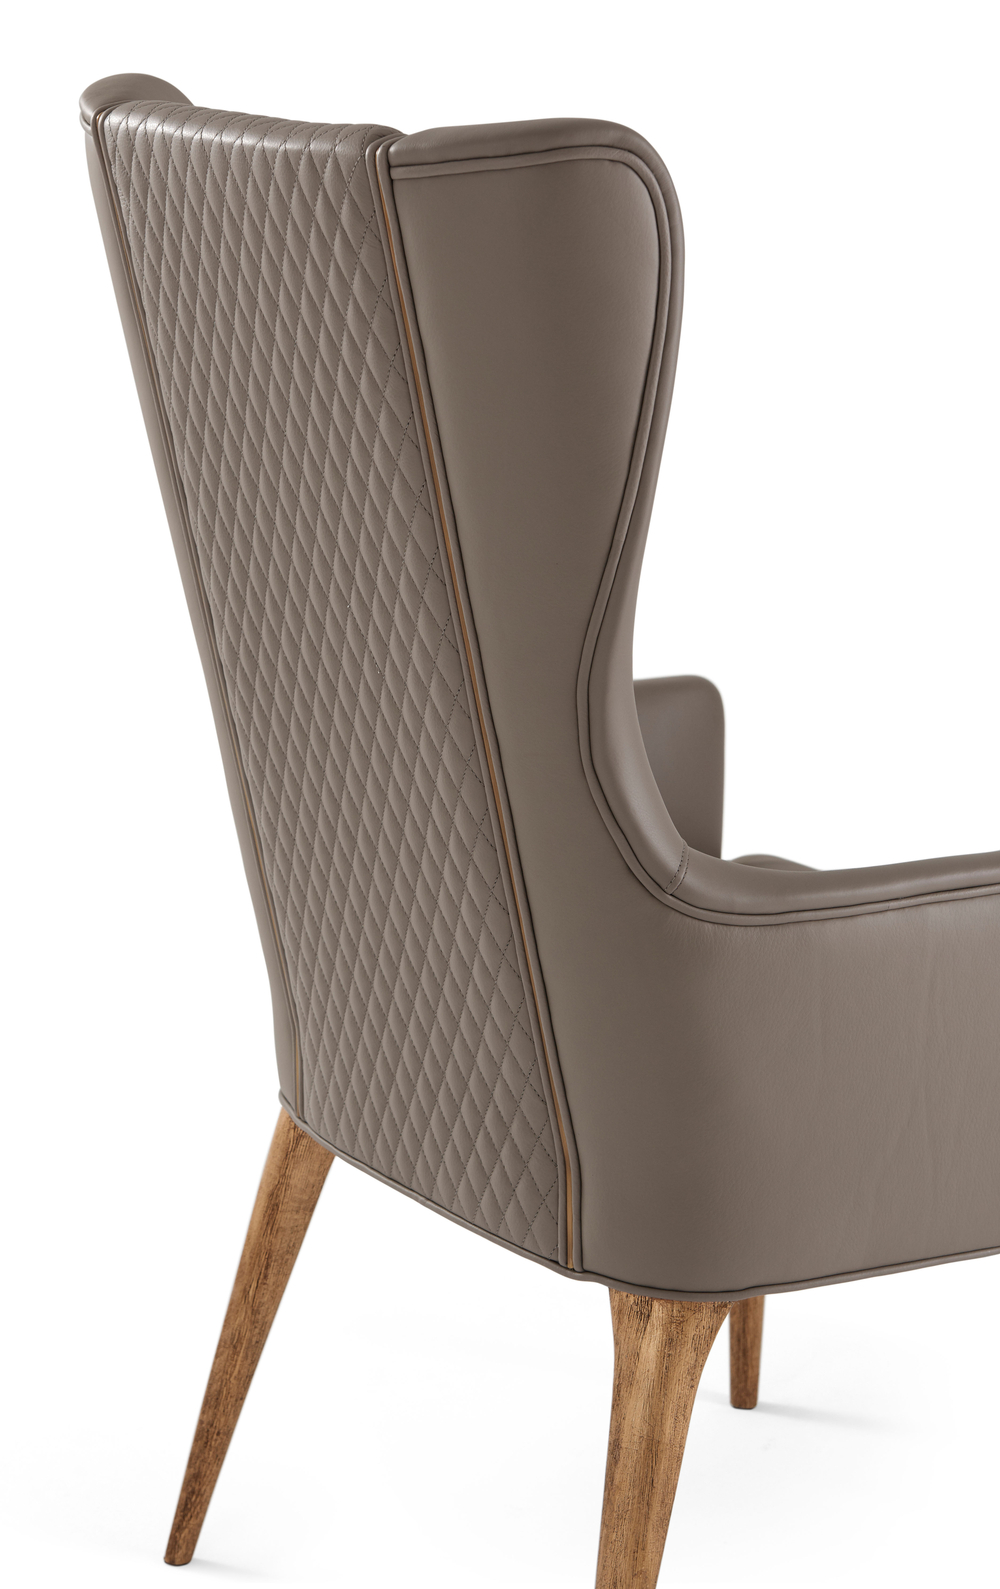 Theodore Alexander - Hastings Dining Arm Chair